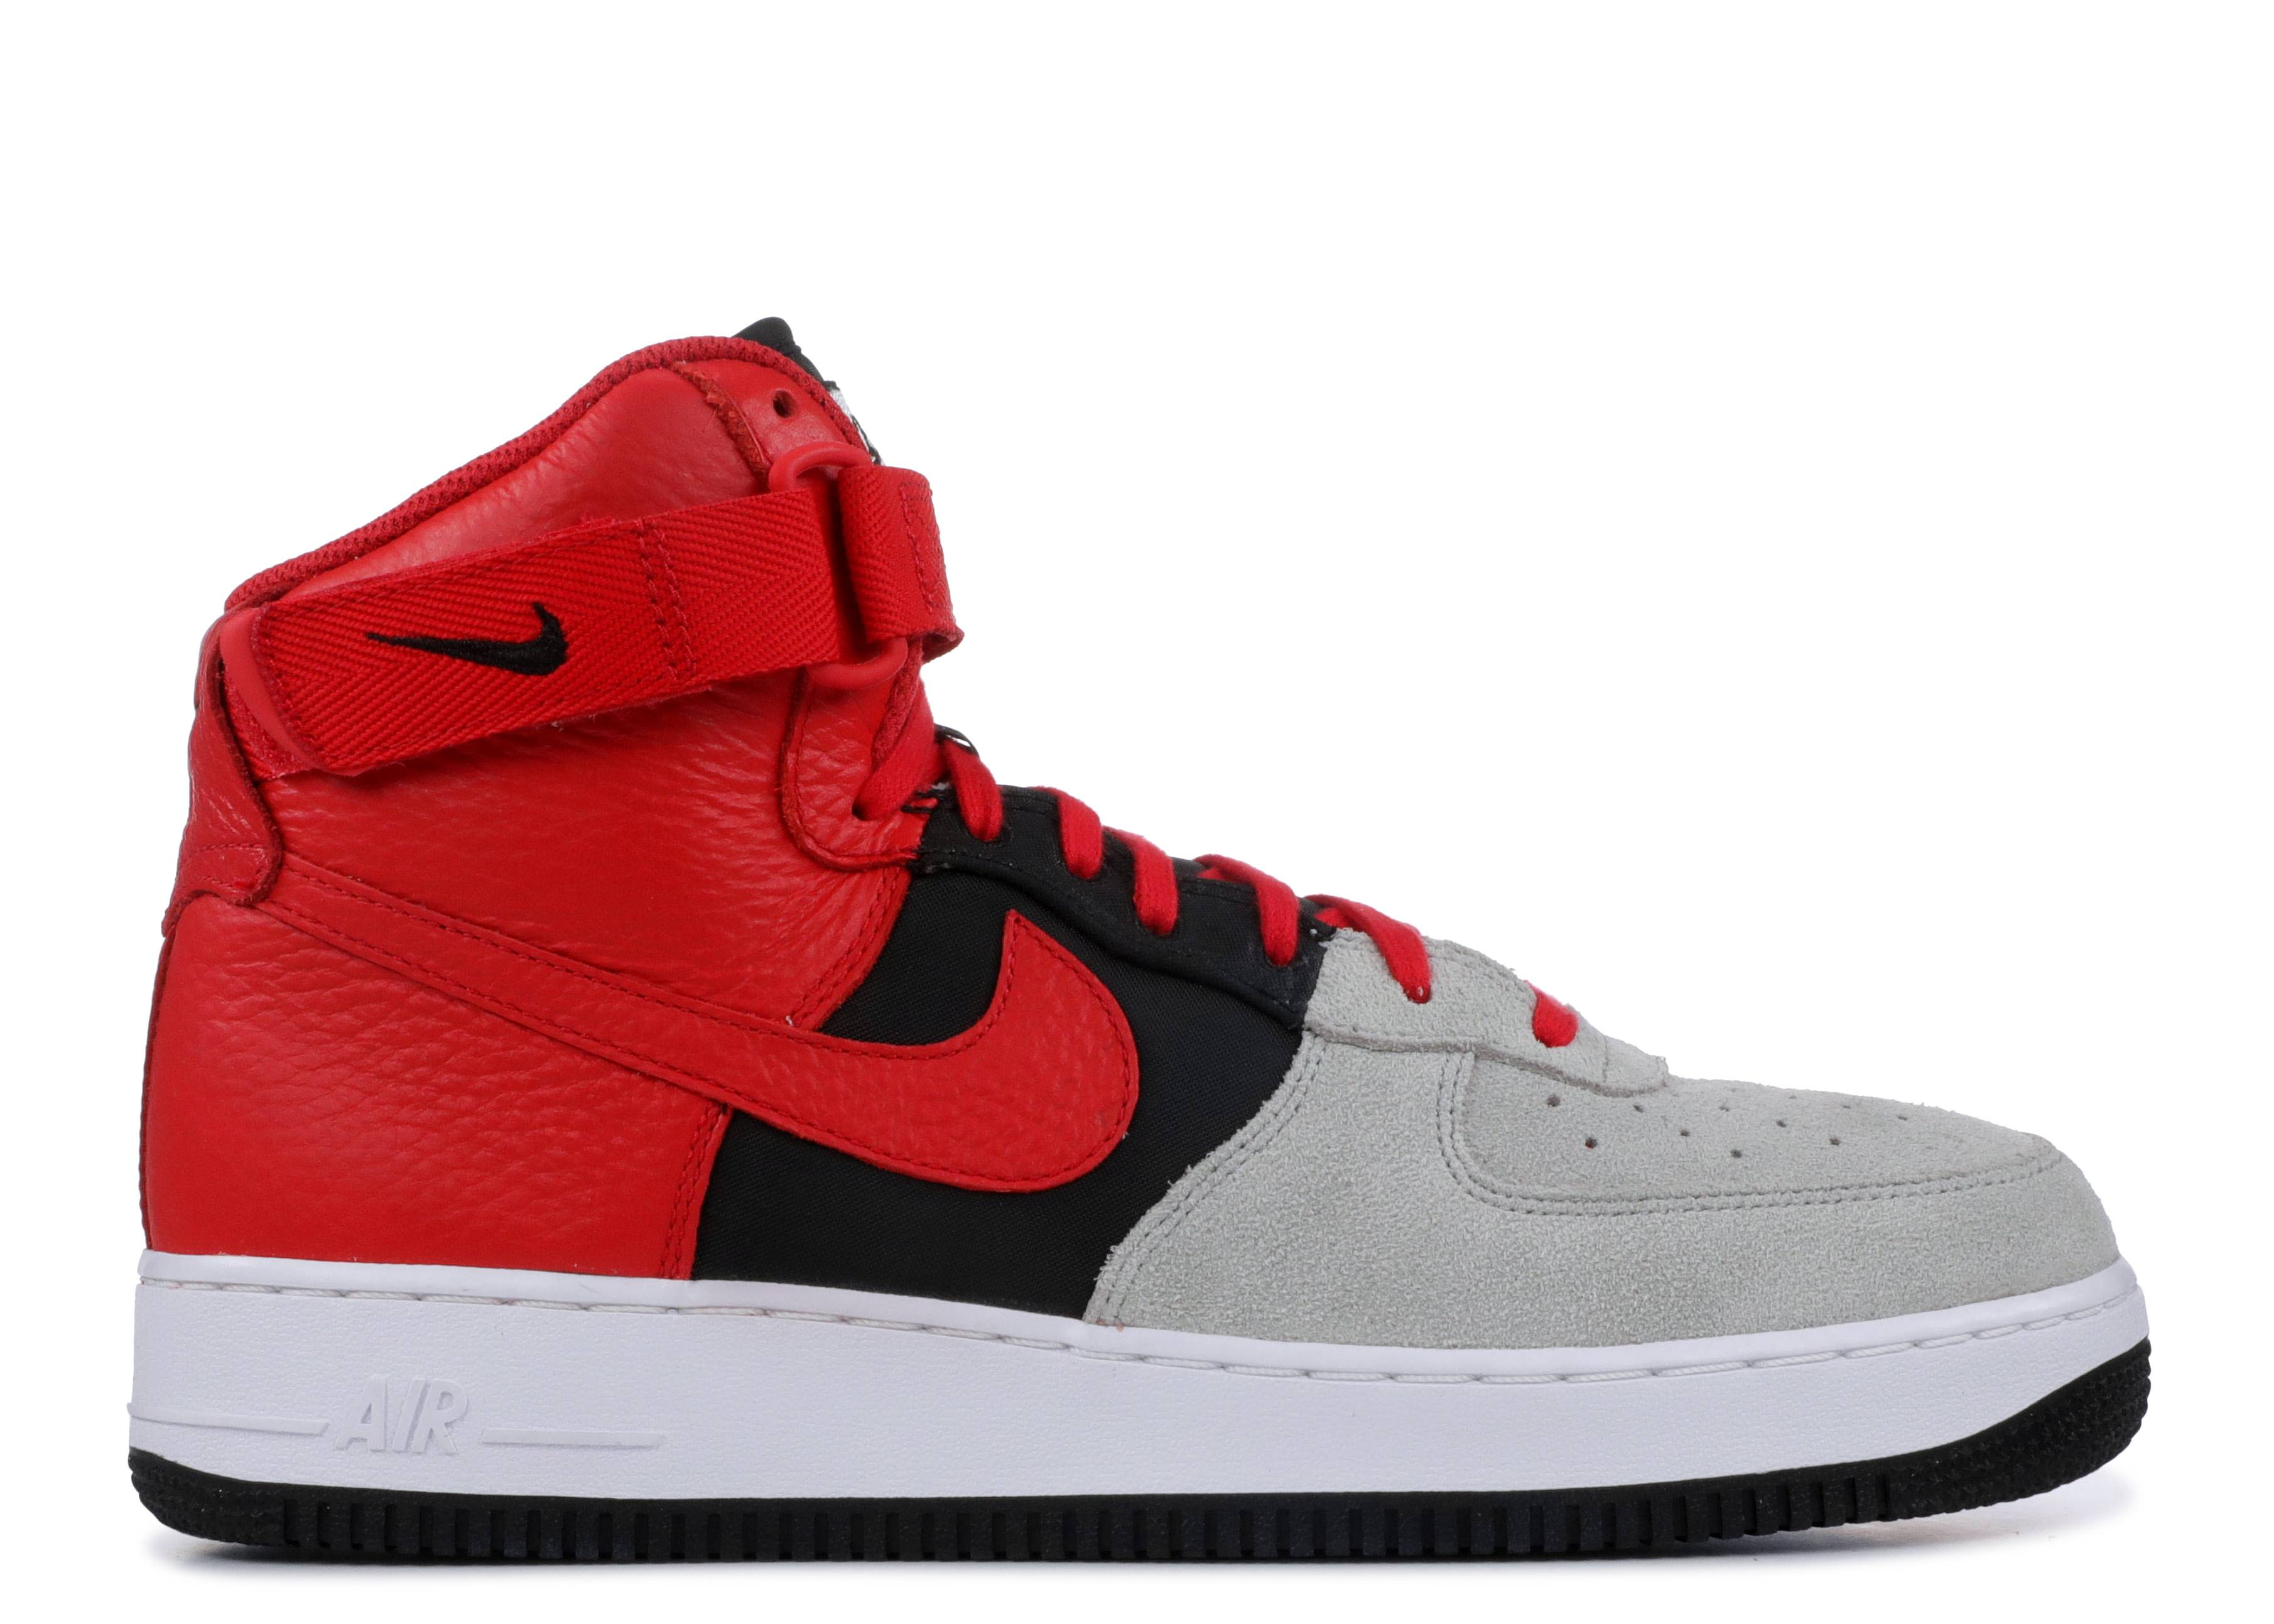 the best attitude 8be12 a3bd9 air force 1 high '07 lv8